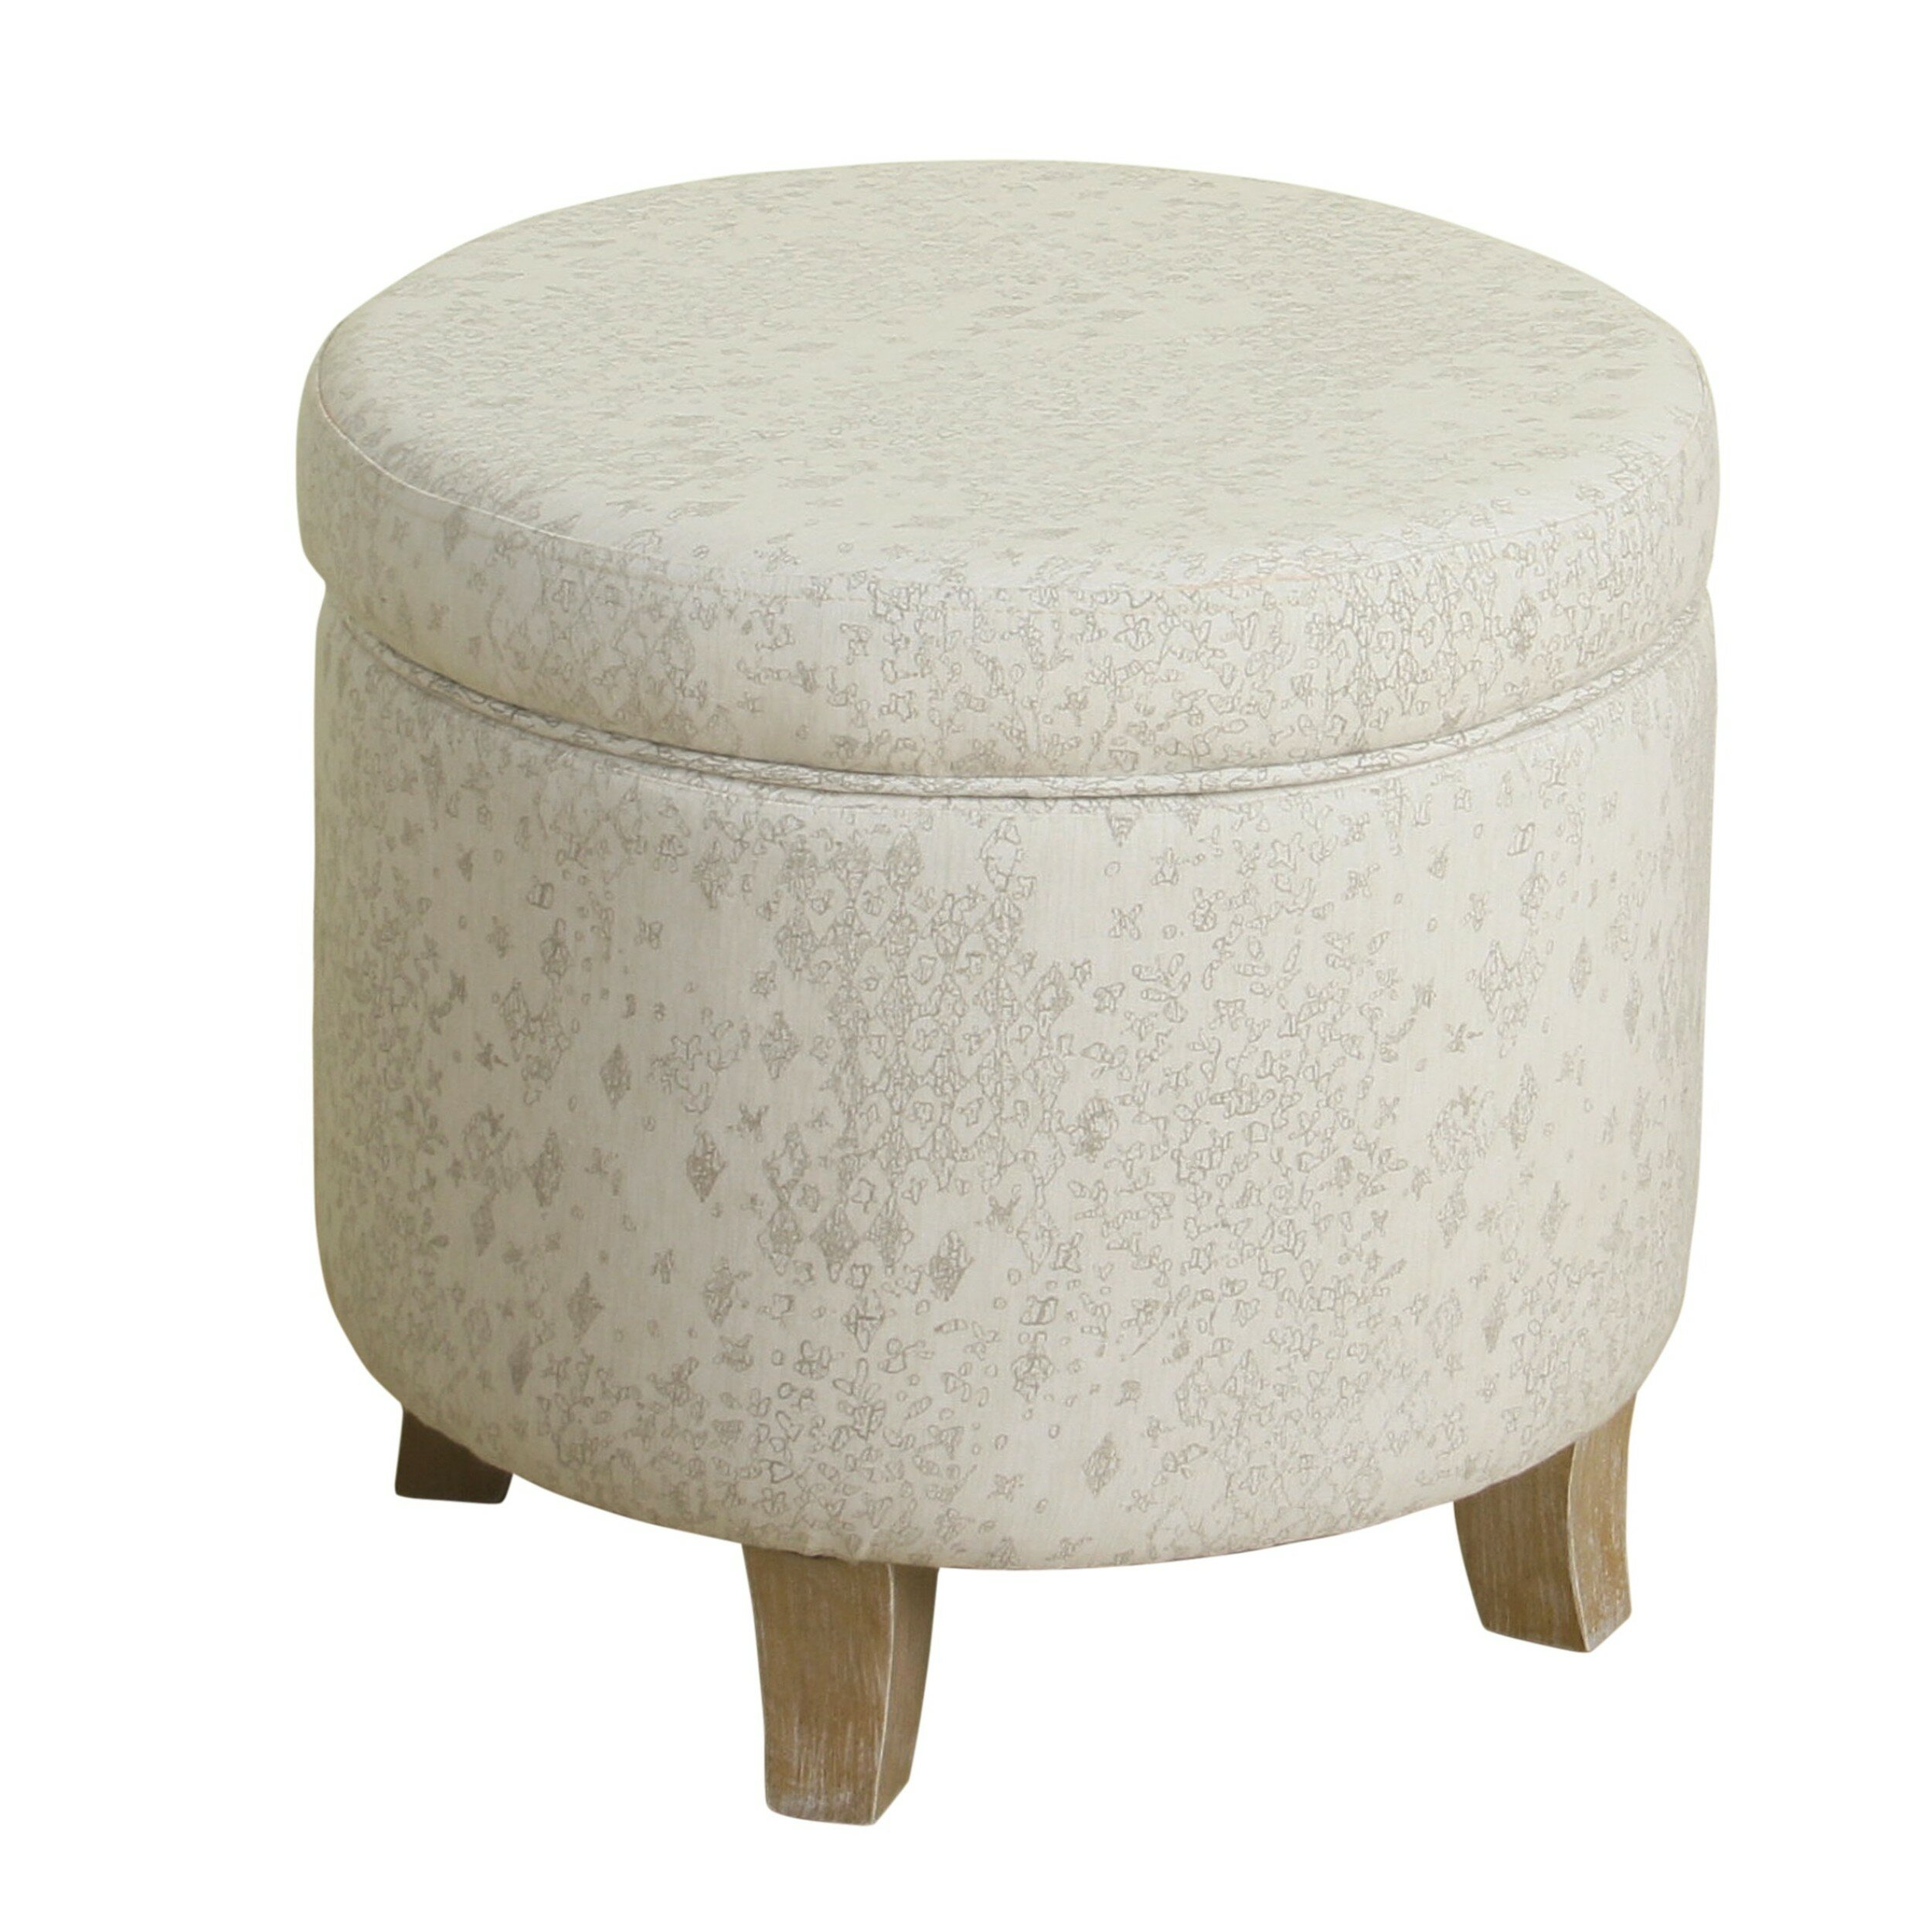 Awe Inspiring Derosier Round Storage Ottoman Caraccident5 Cool Chair Designs And Ideas Caraccident5Info